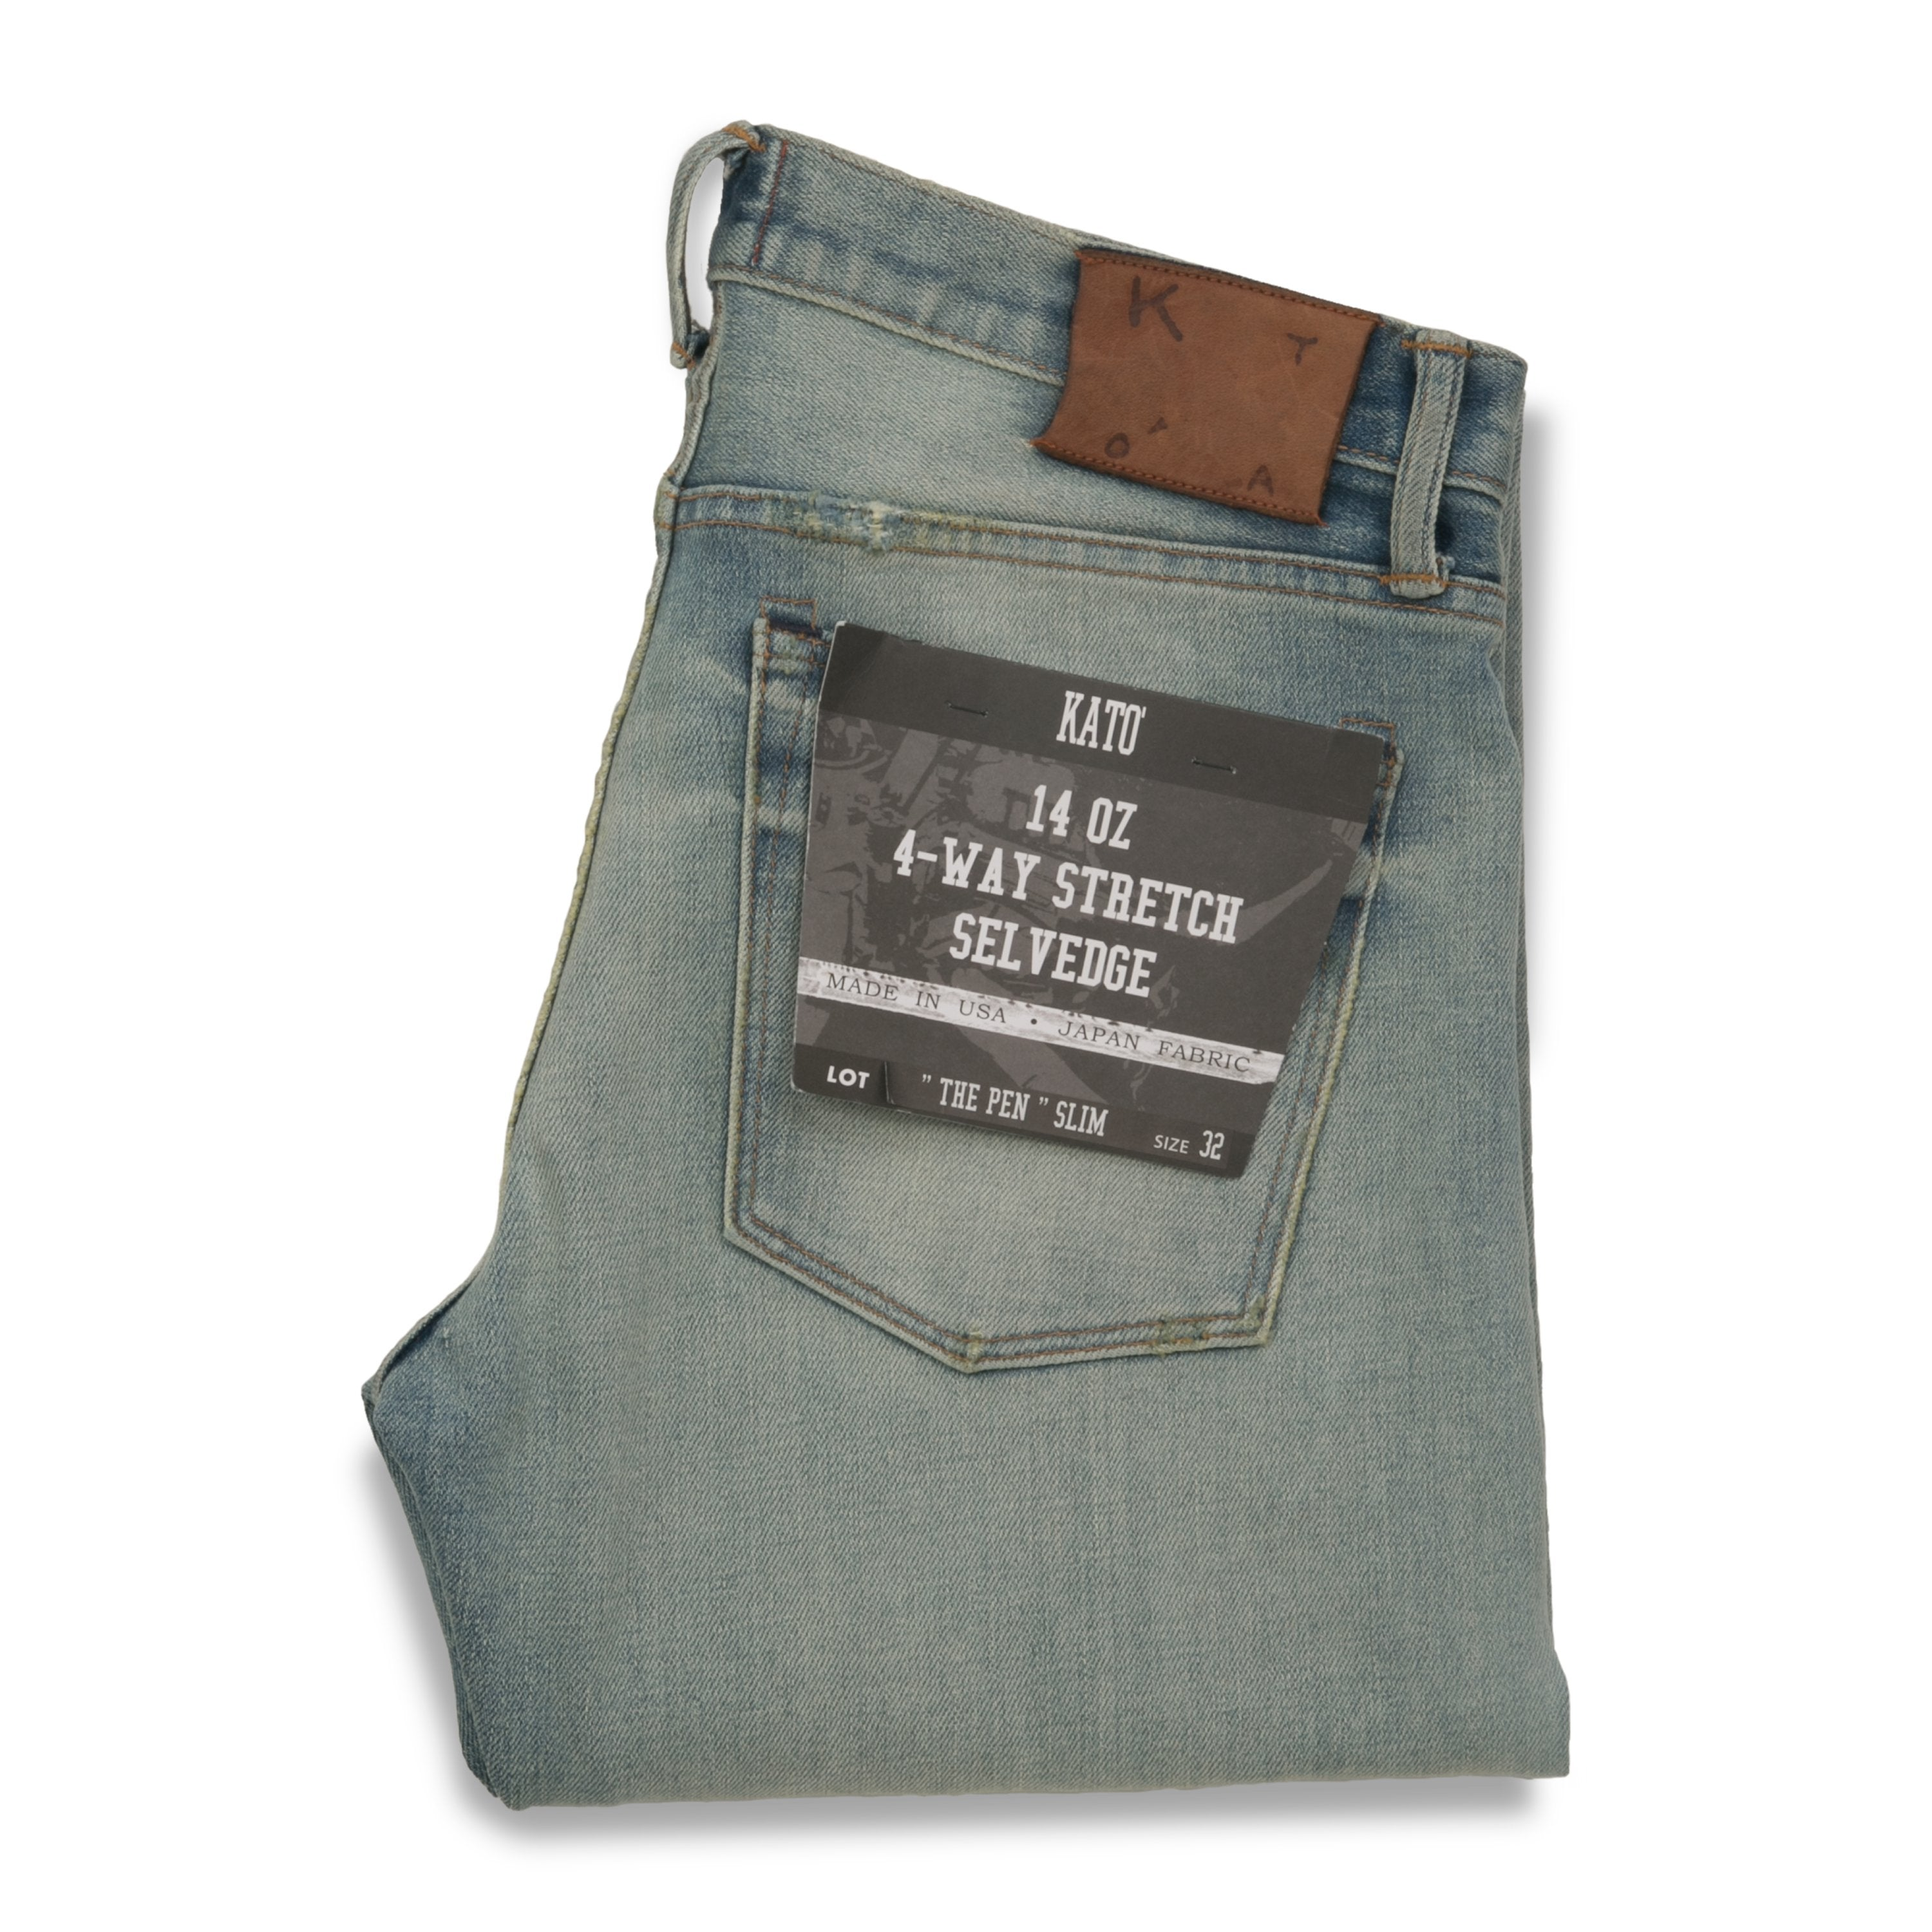 """THE PEN"" SLIM - PRETTY BLEACH 14OZ 4-WAY STRETCH SELVEDGE JEANS"